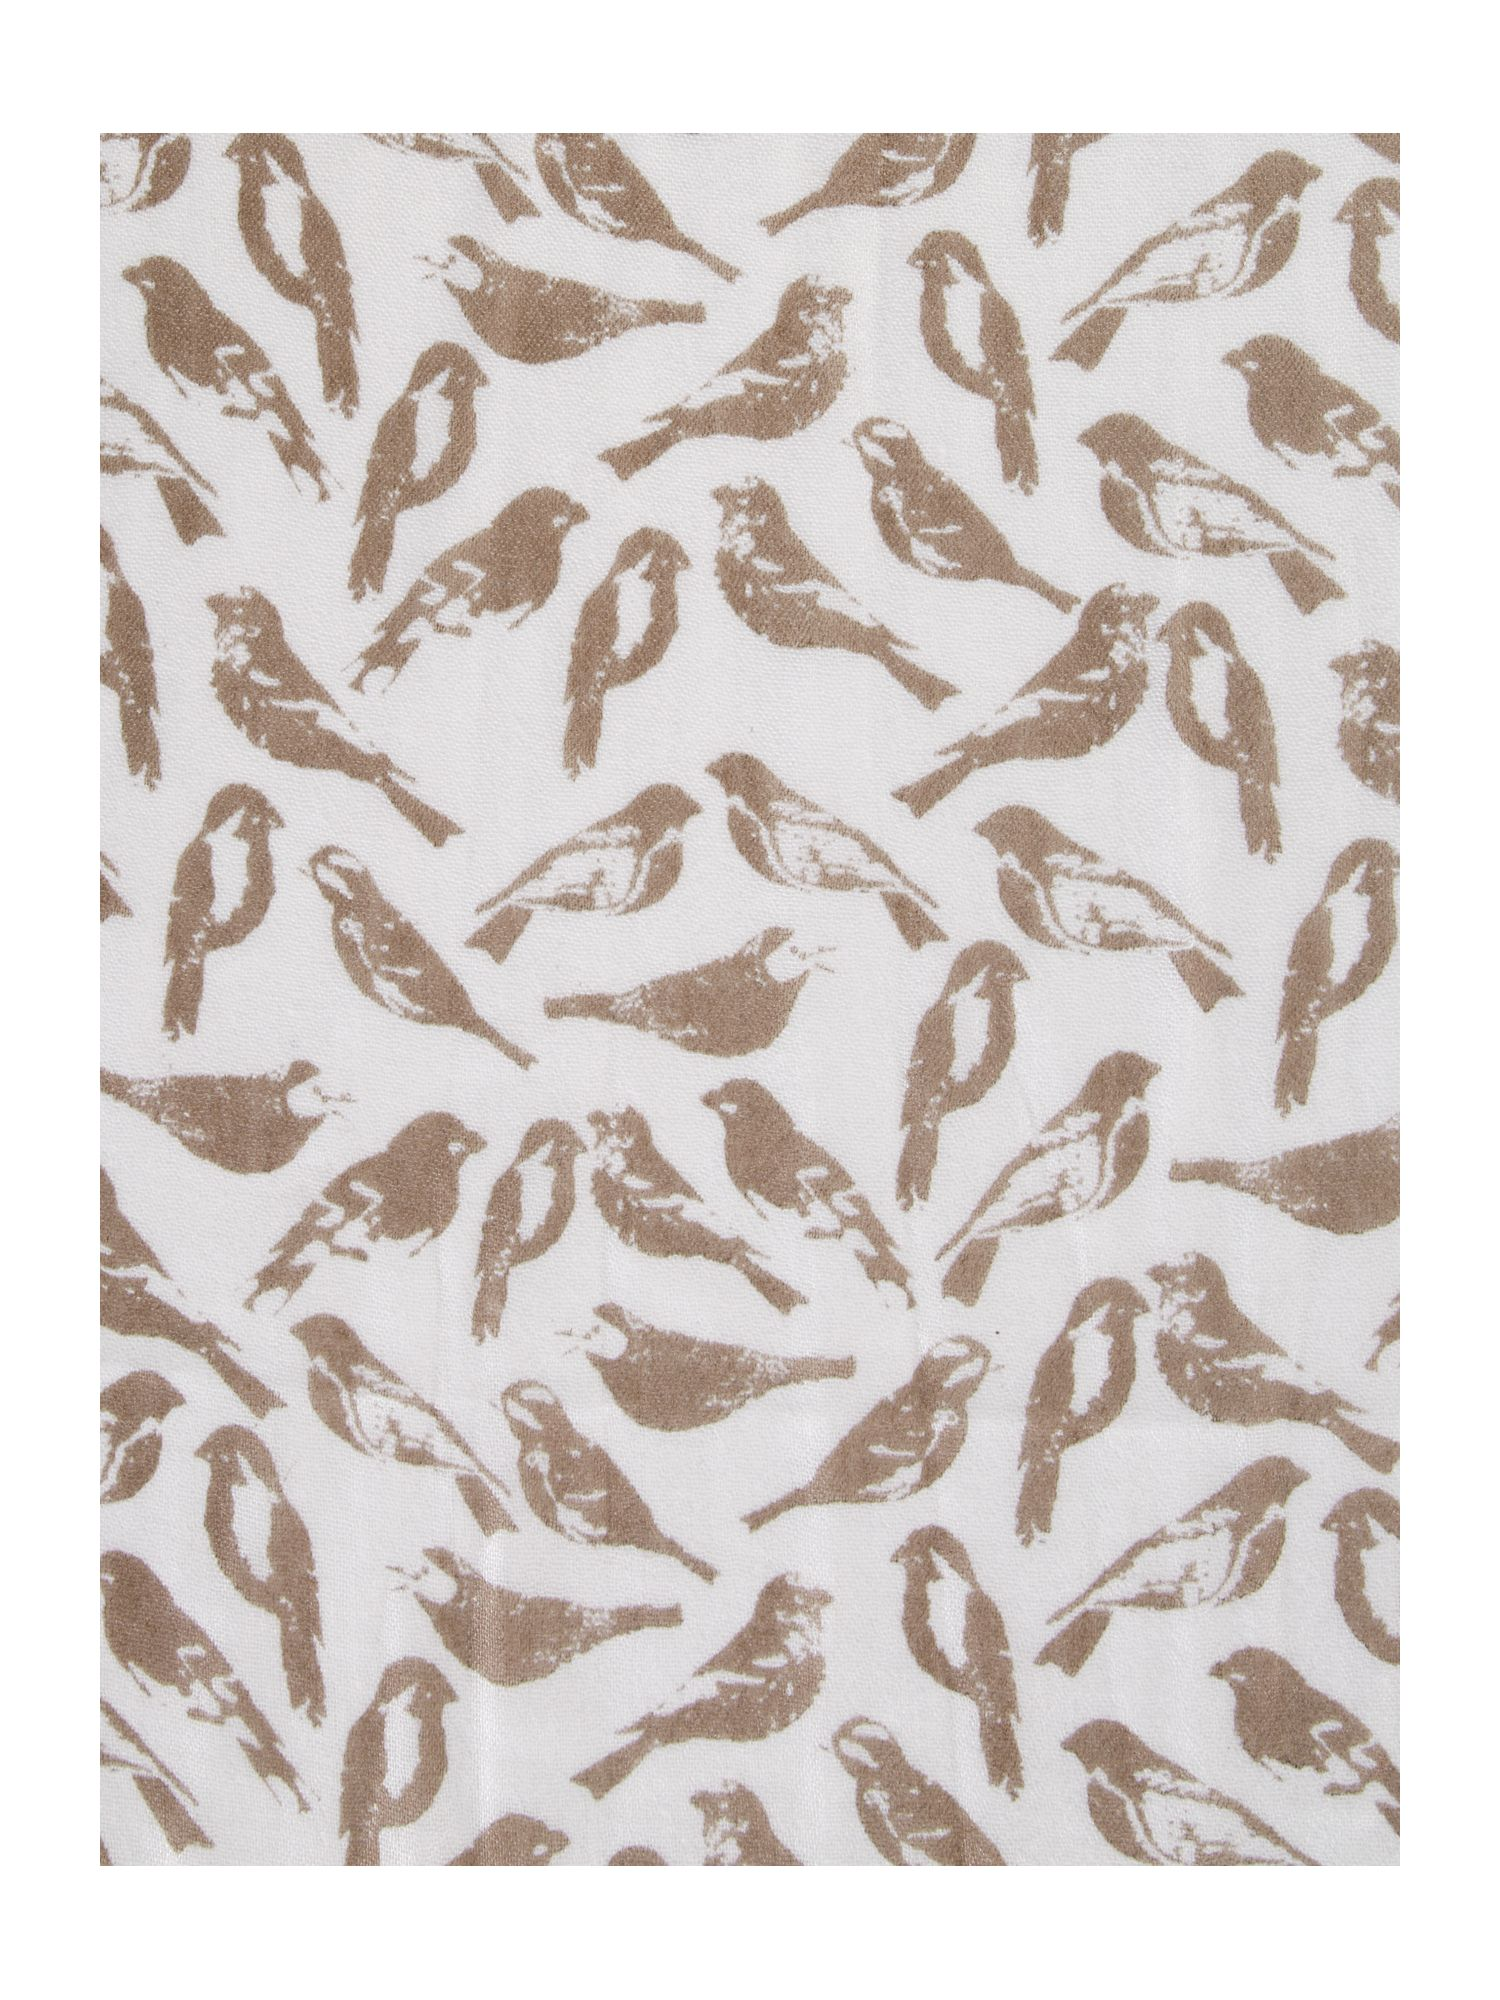 Scatter bird print lightweight scarf